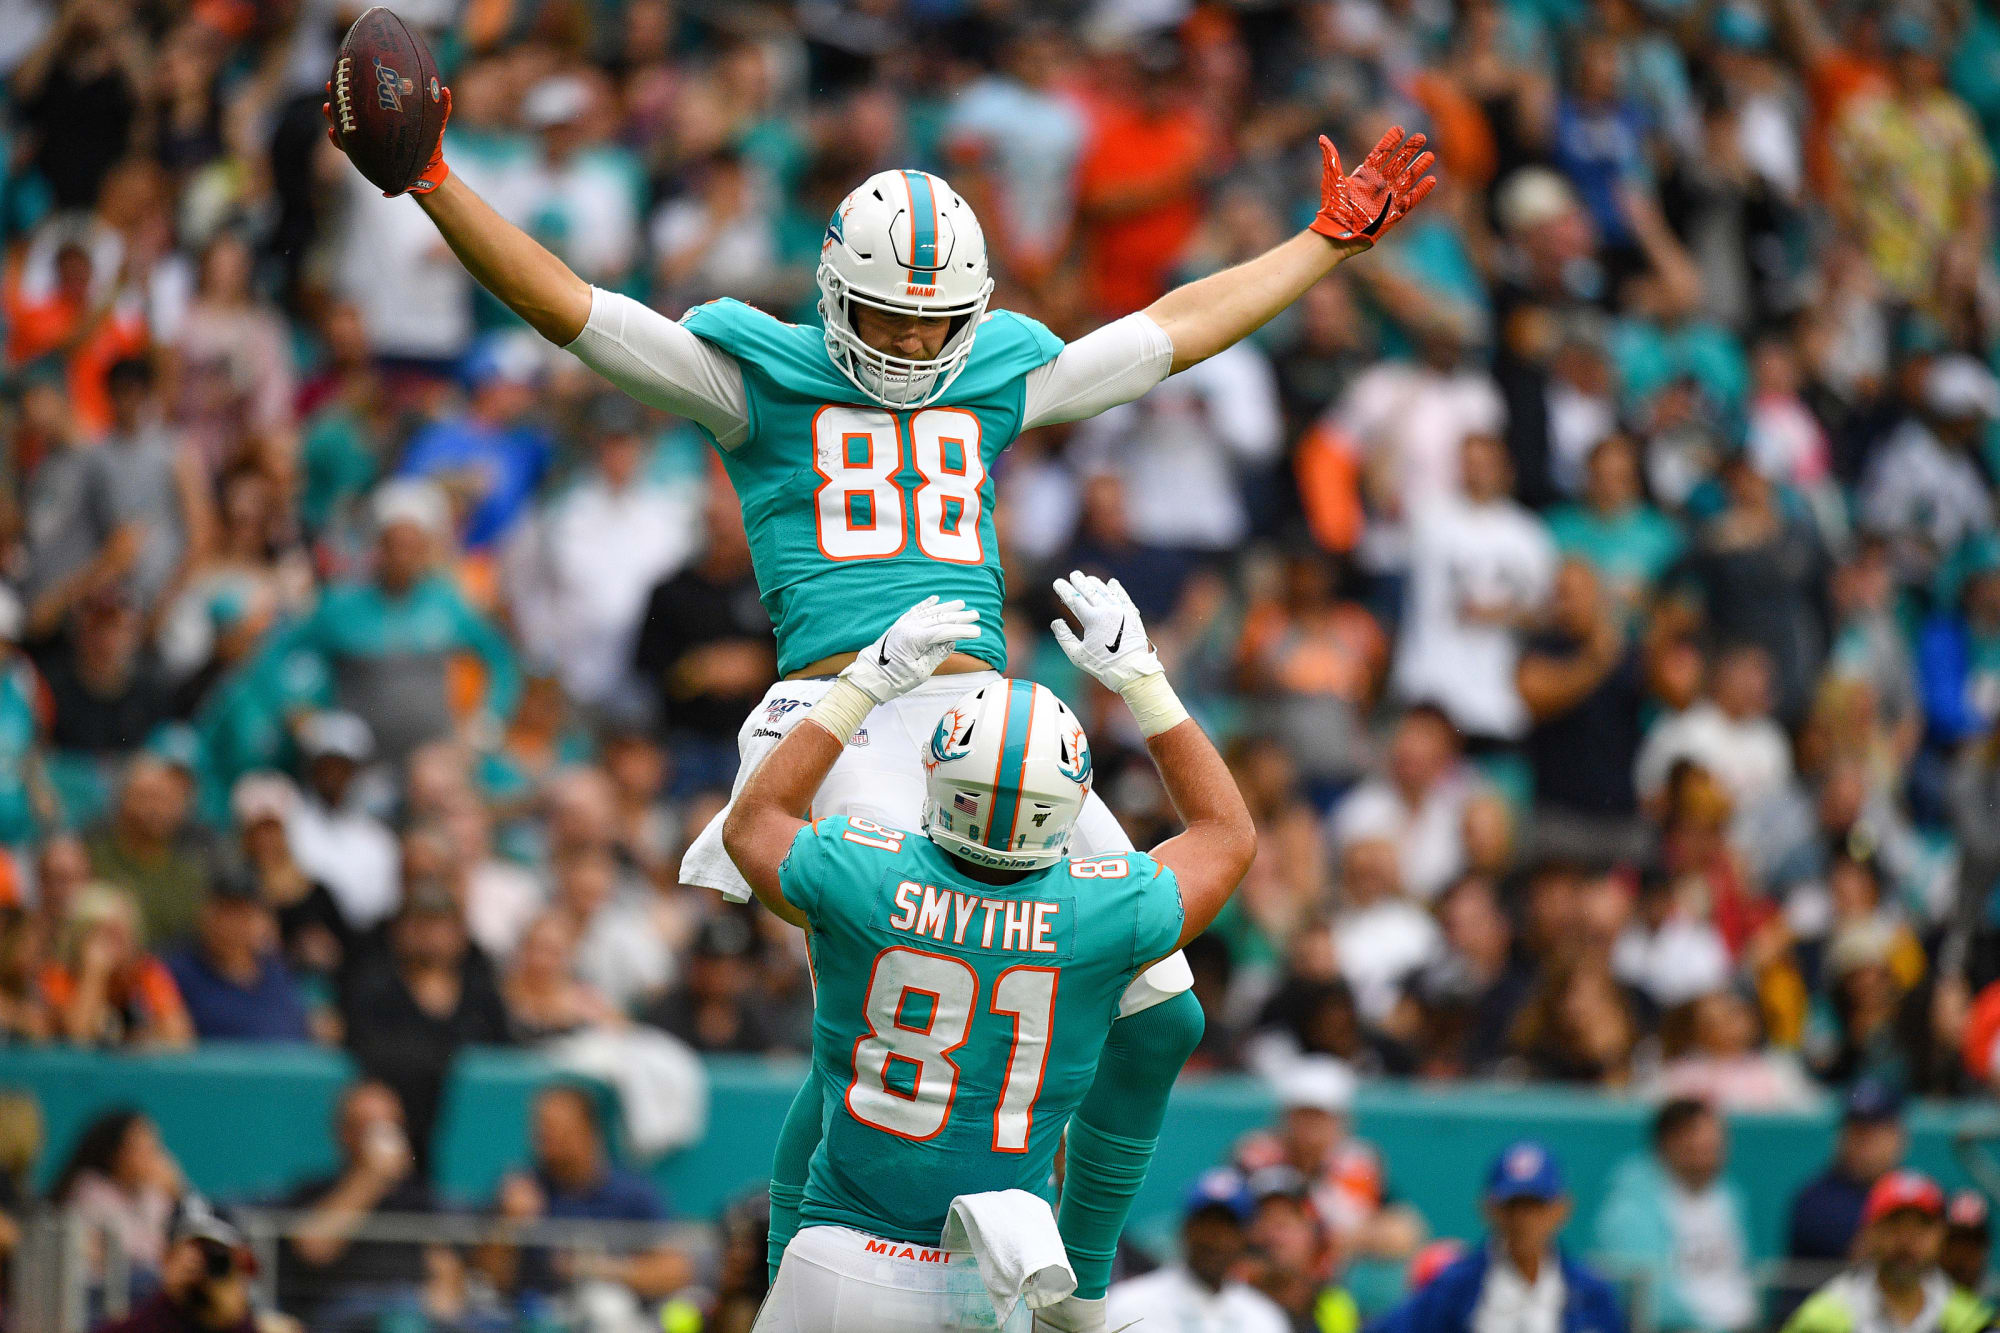 Will there be more mentors for this younger Miami Dolphins team?